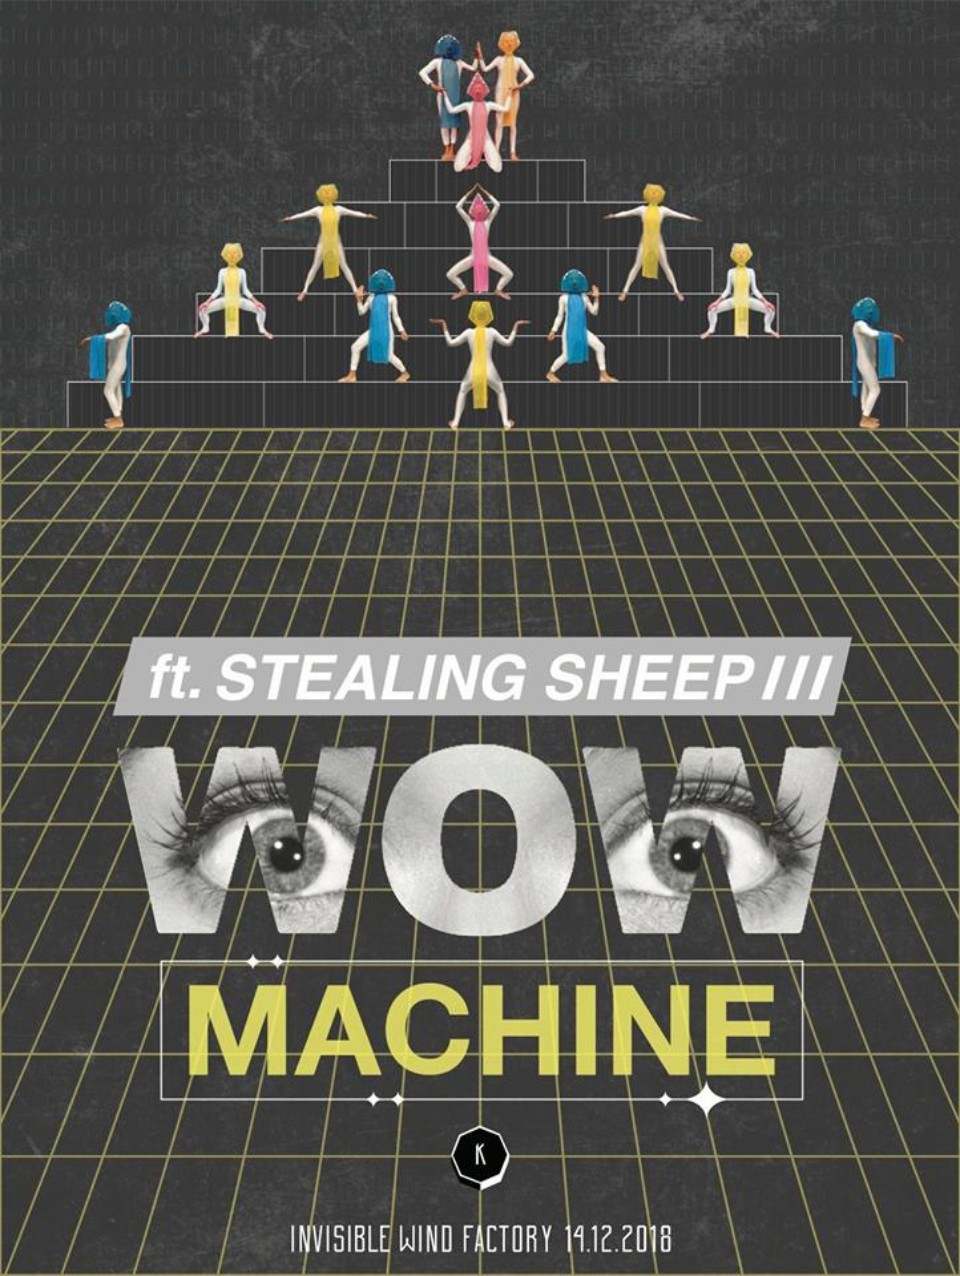 Wow Machine